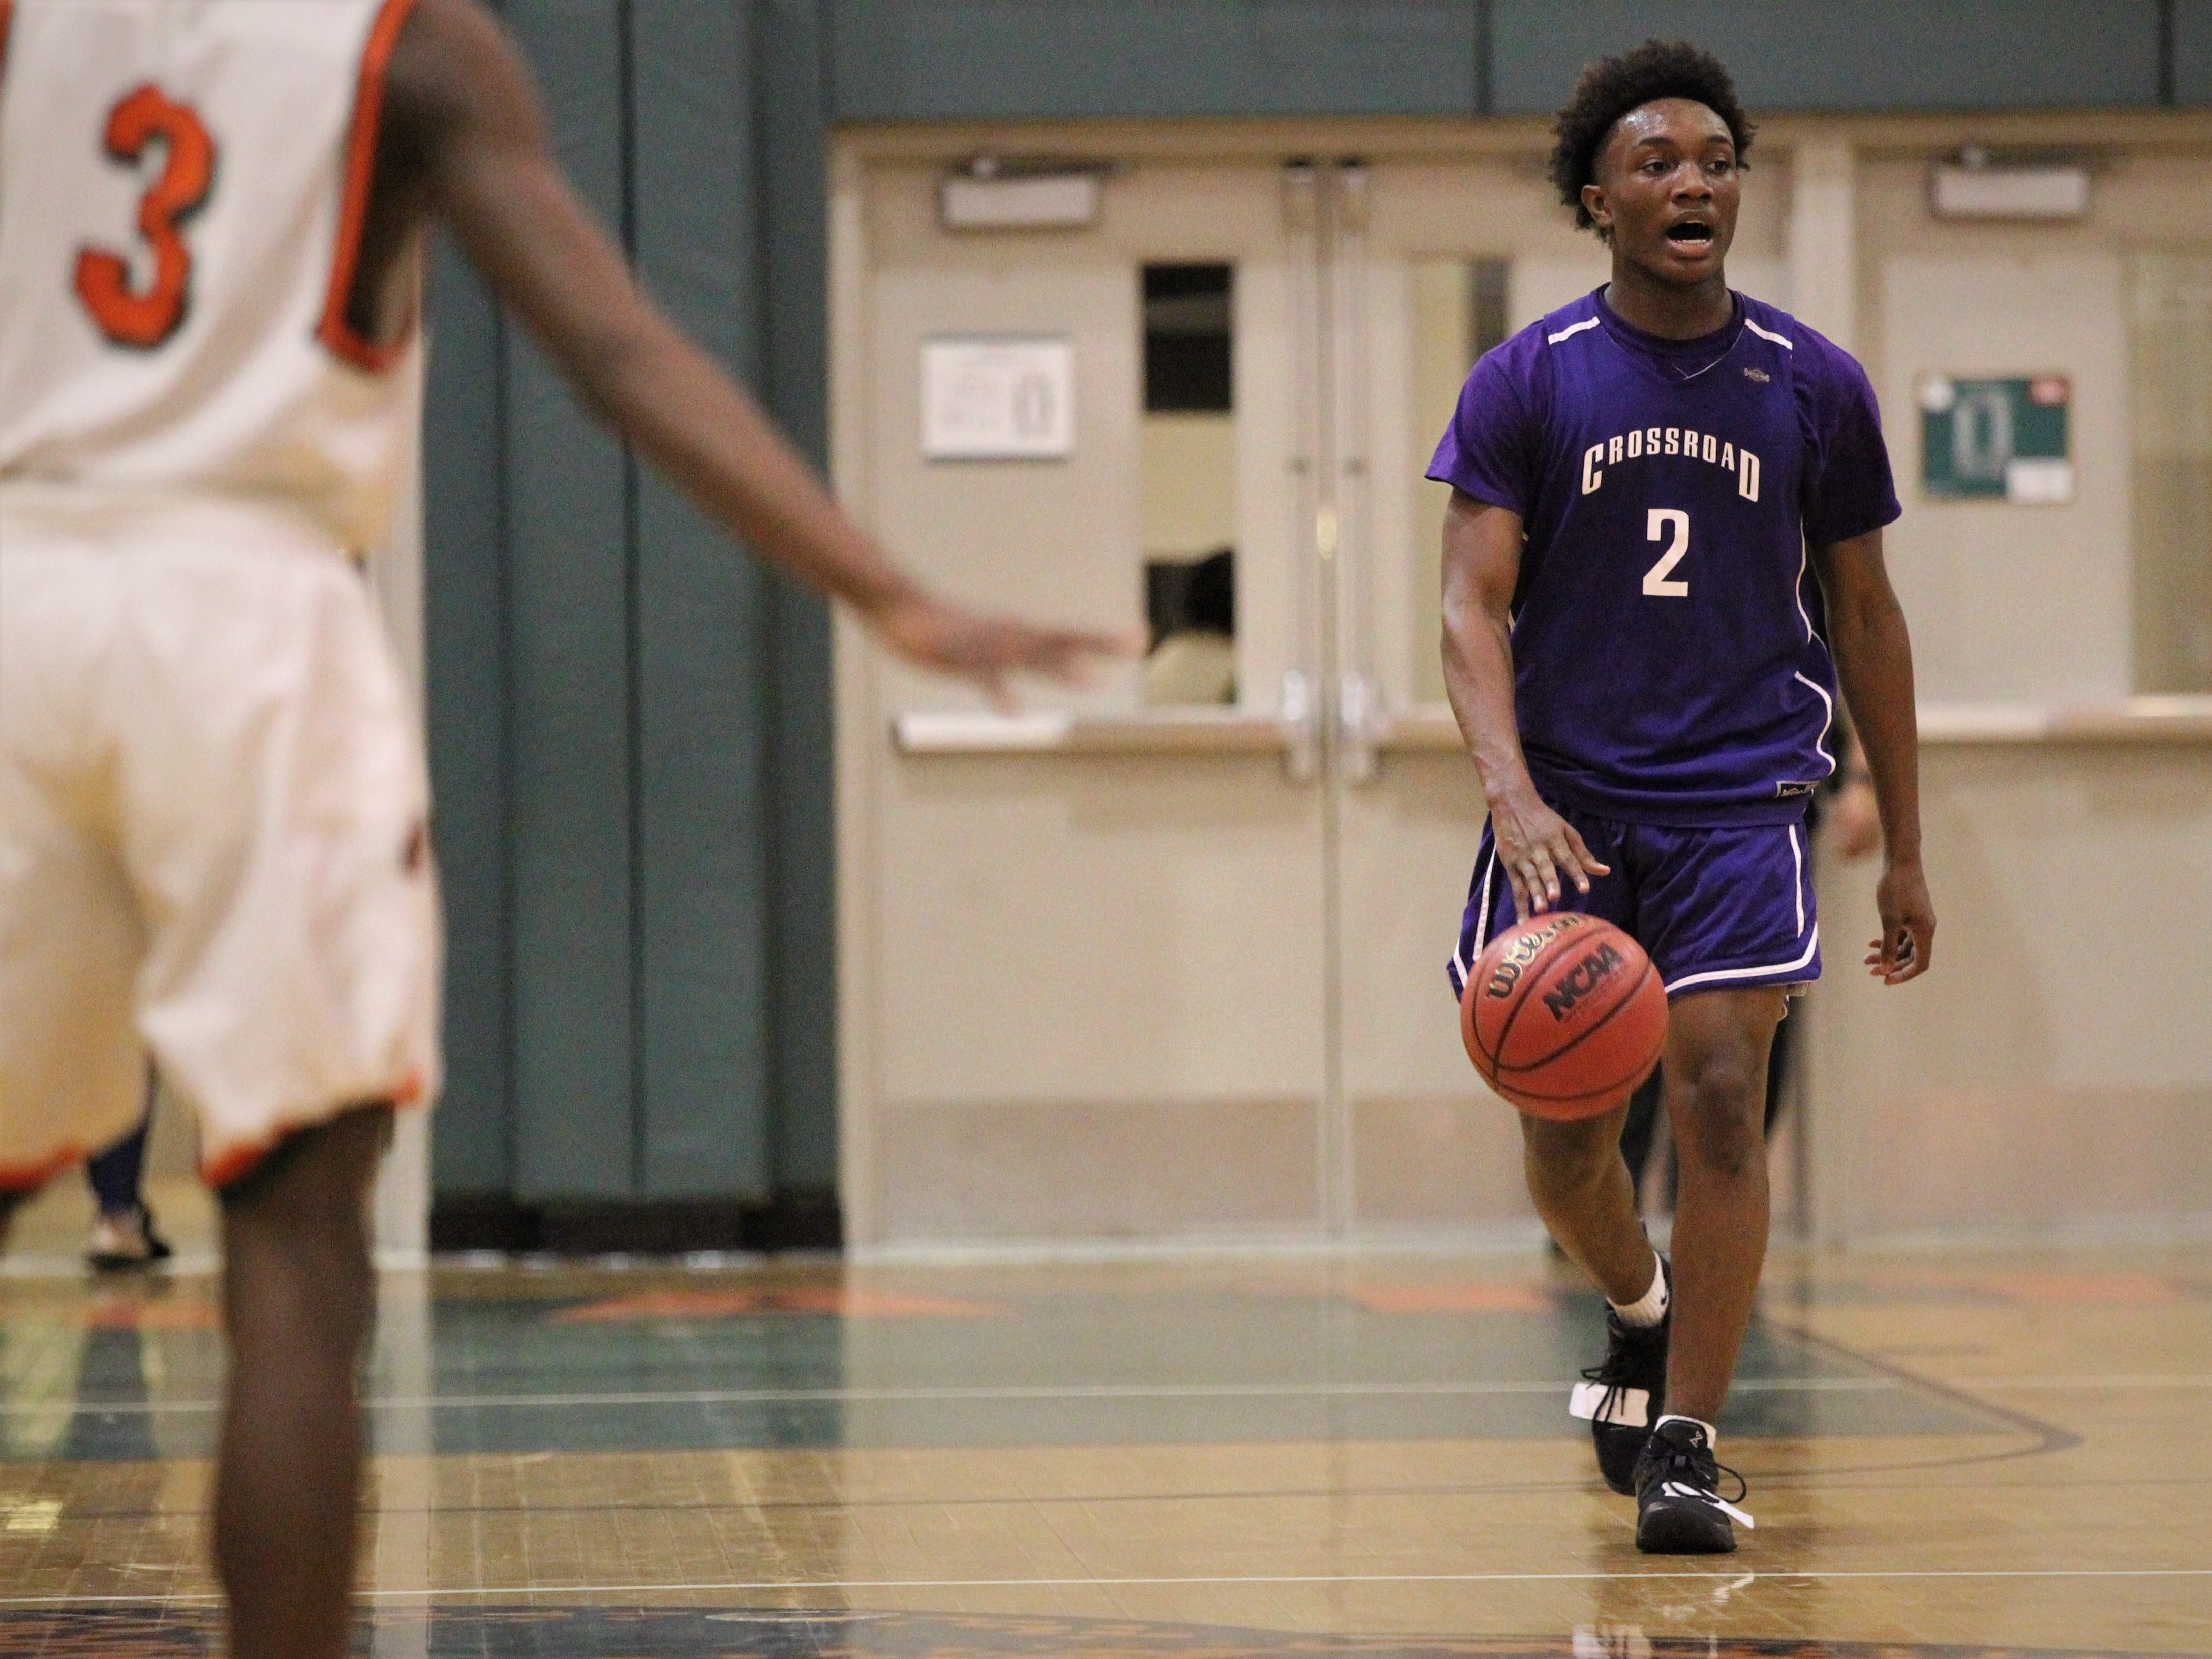 Jeremiah Outley brings the ball up the court as Crossroad Academy's boys basketball team plays at FAMU DRS on Jan. 7, 2019.